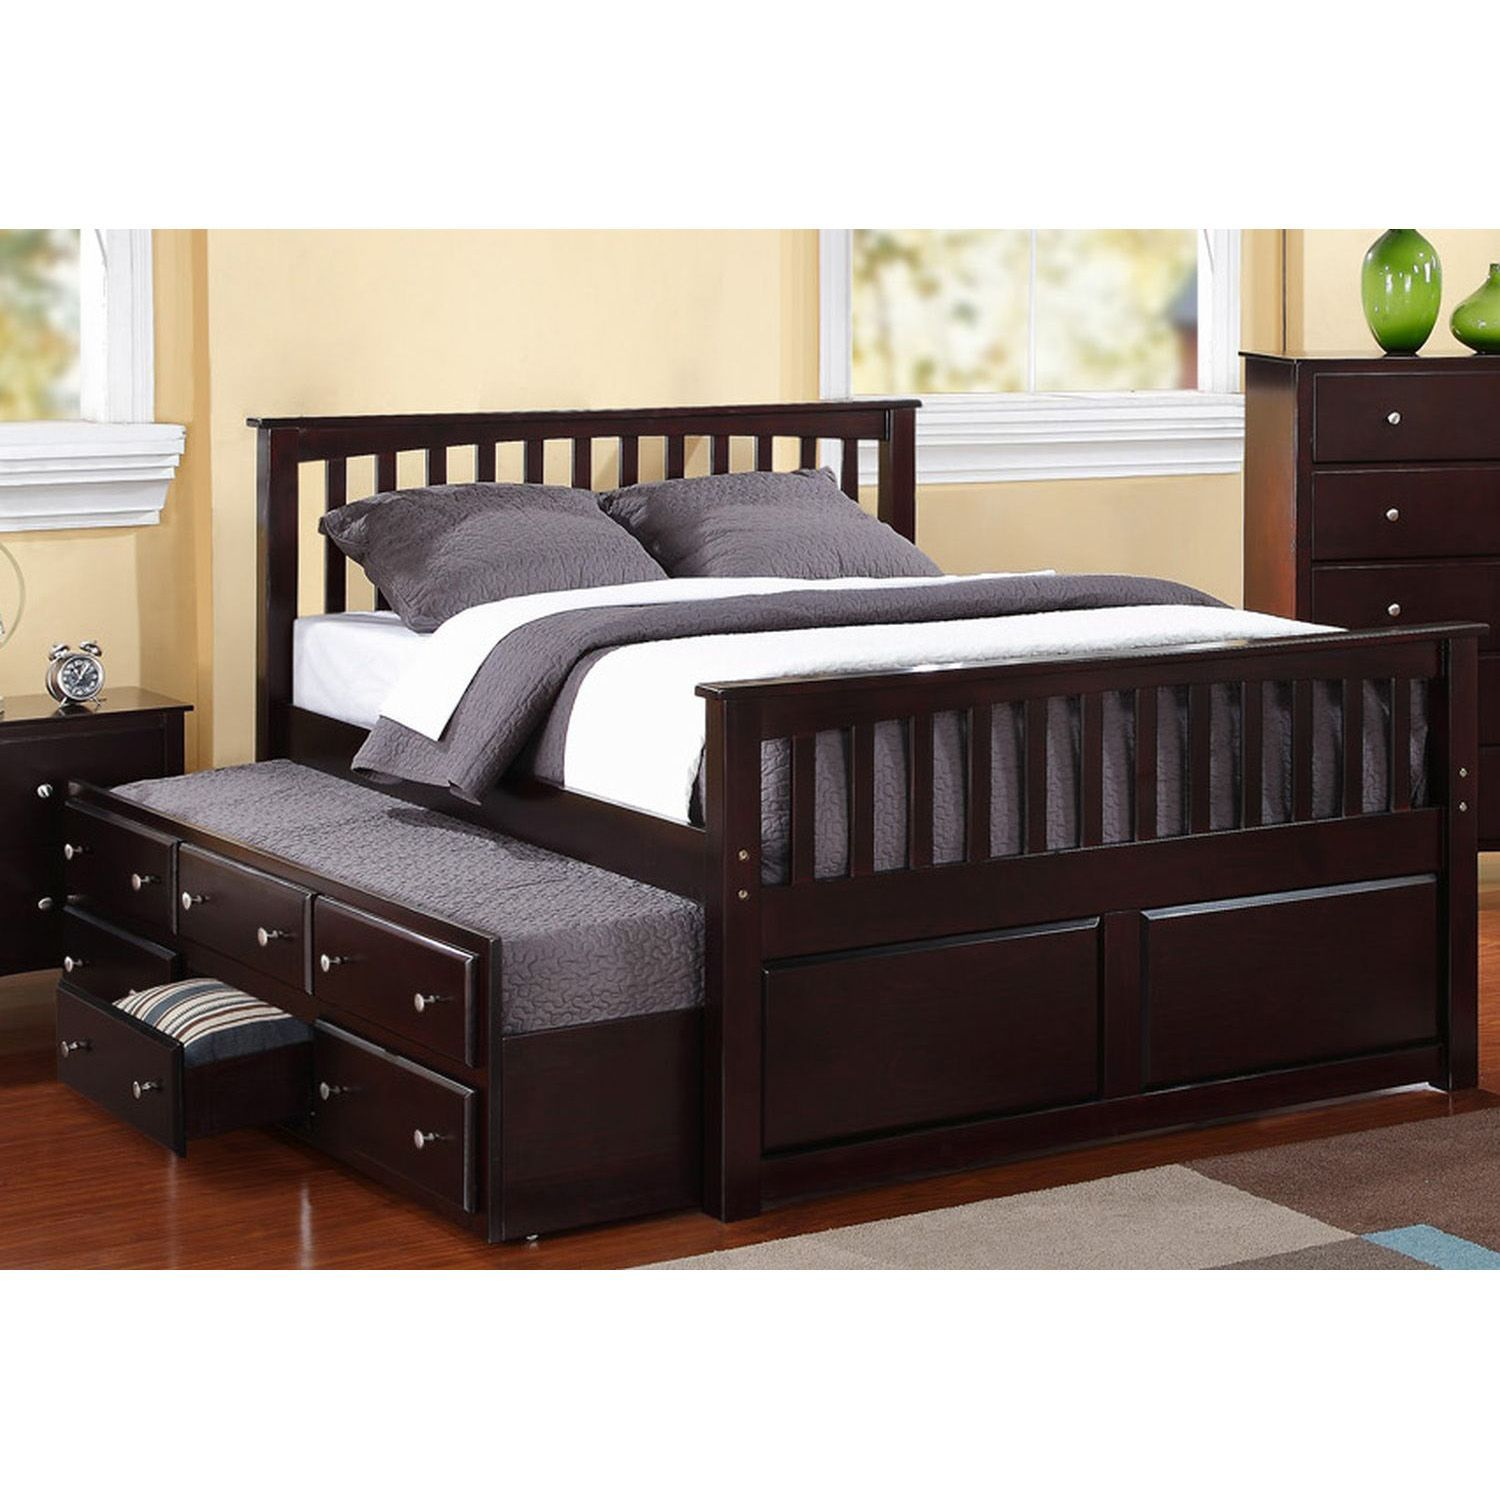 Seaham Captain Bed With Twin Trundle And Storage Drawers Sam S